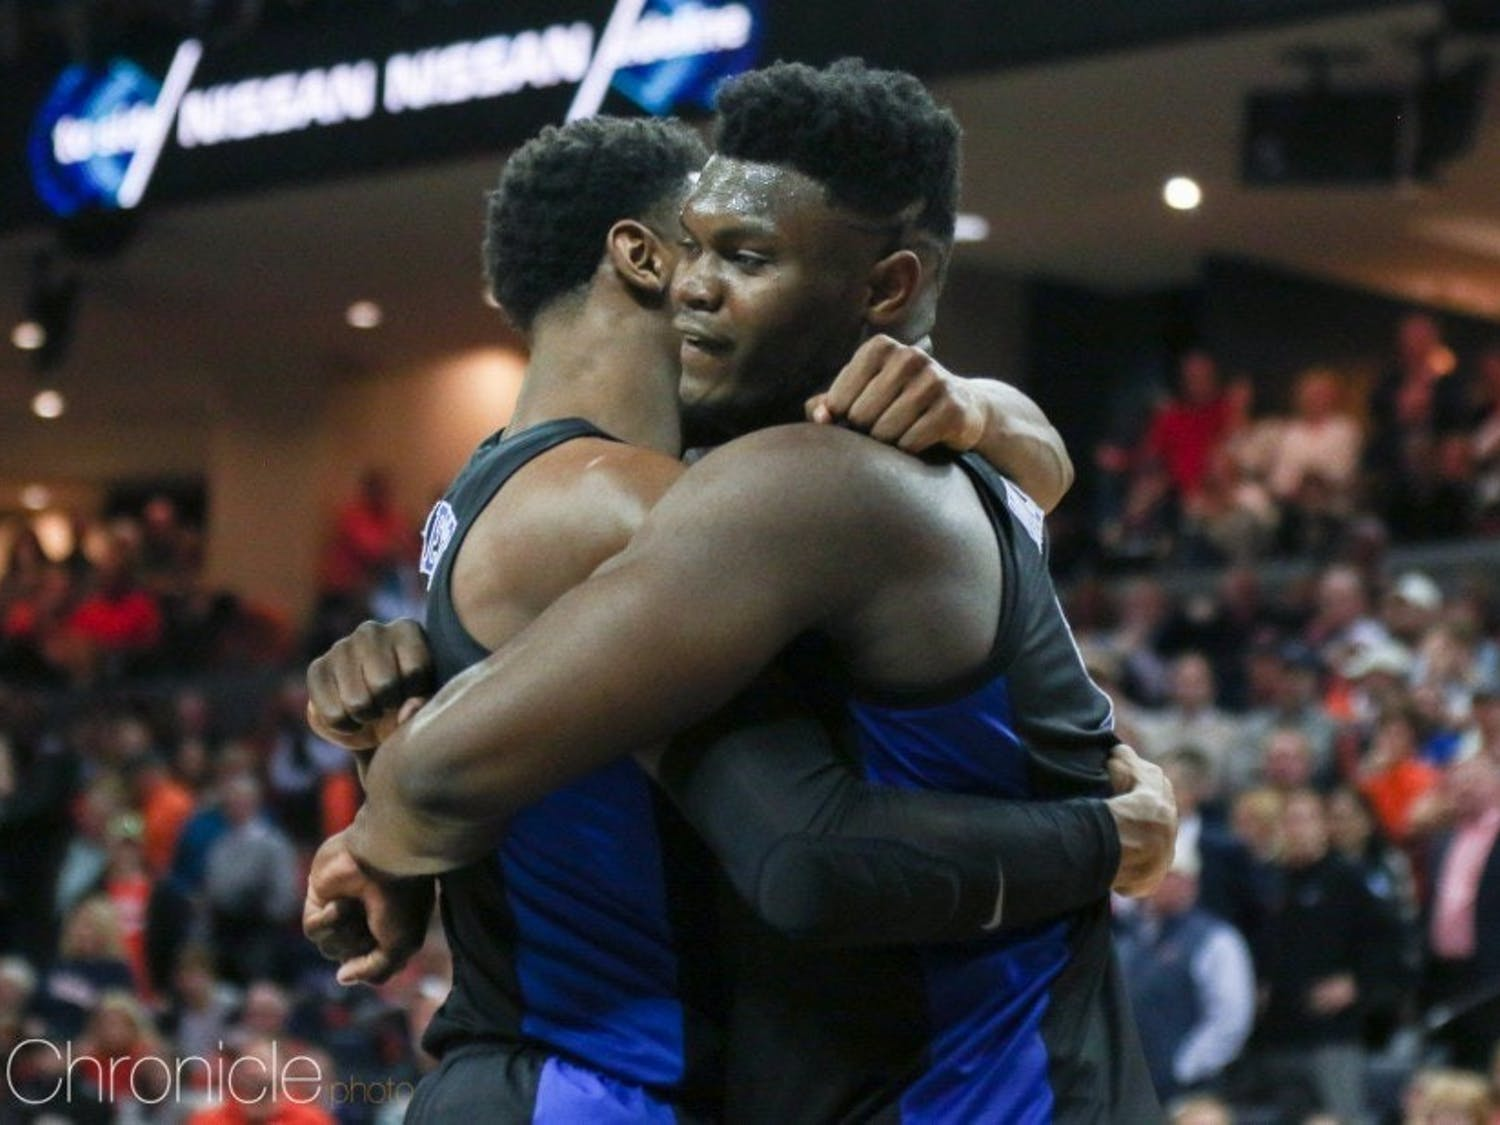 R.J. Barrett and Zion Williamson led Duke to an ACC tournament title and Elite Eight appearance this season.